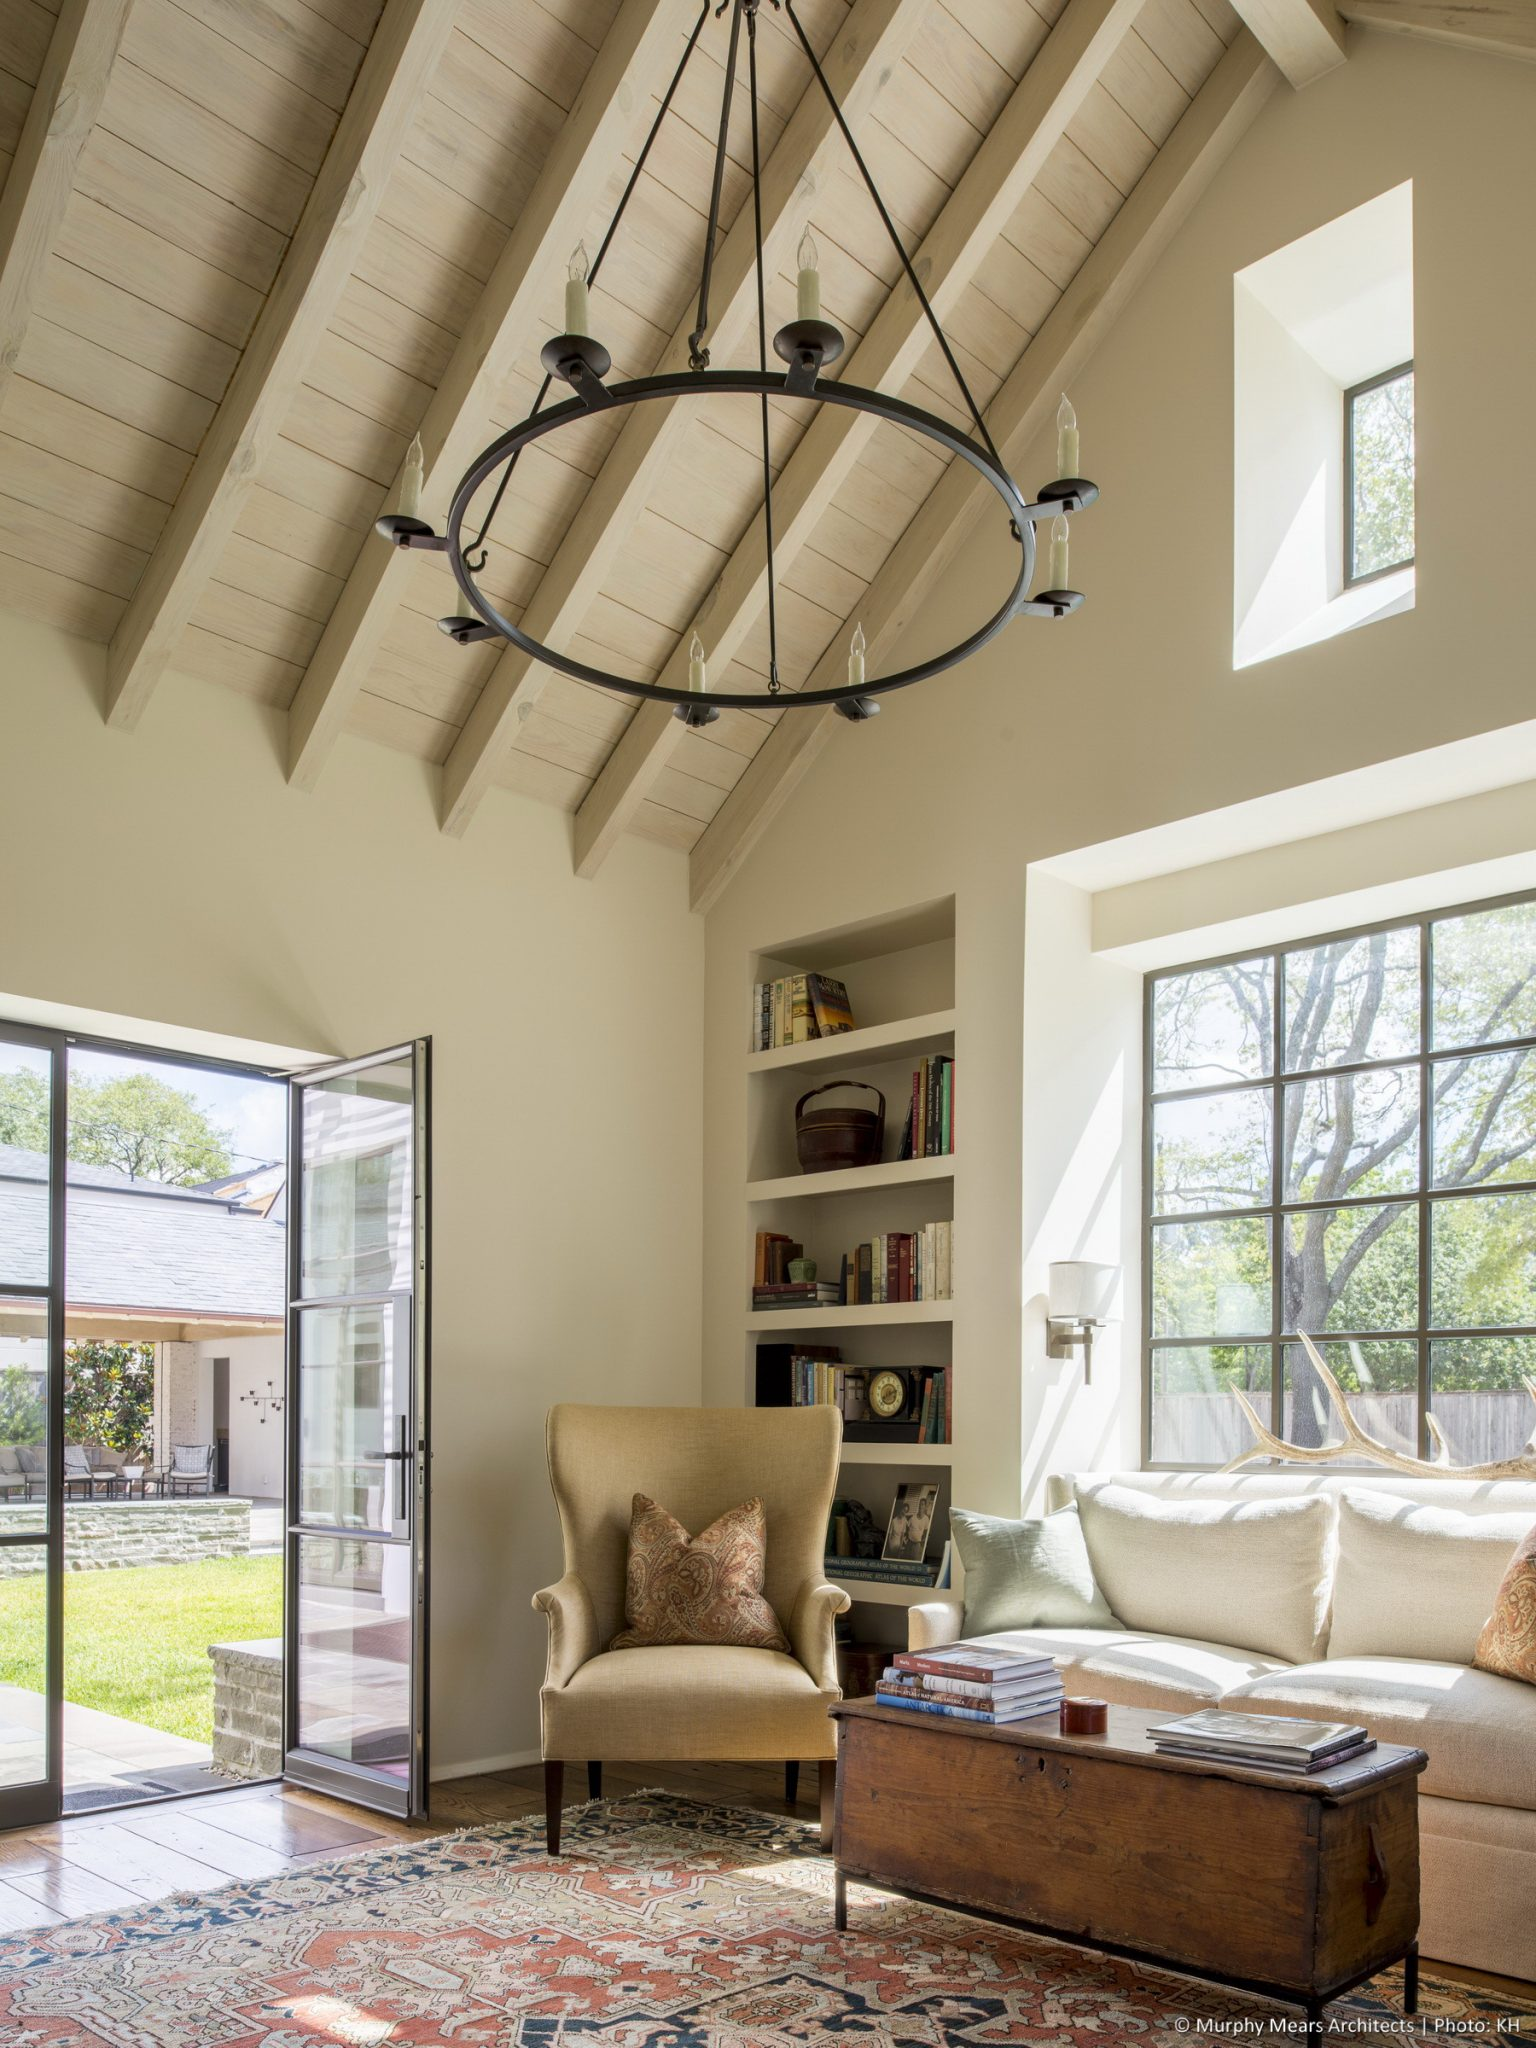 Courtyard House - 1-story vaulted study with windows and doors overlooking the central outdoor space.